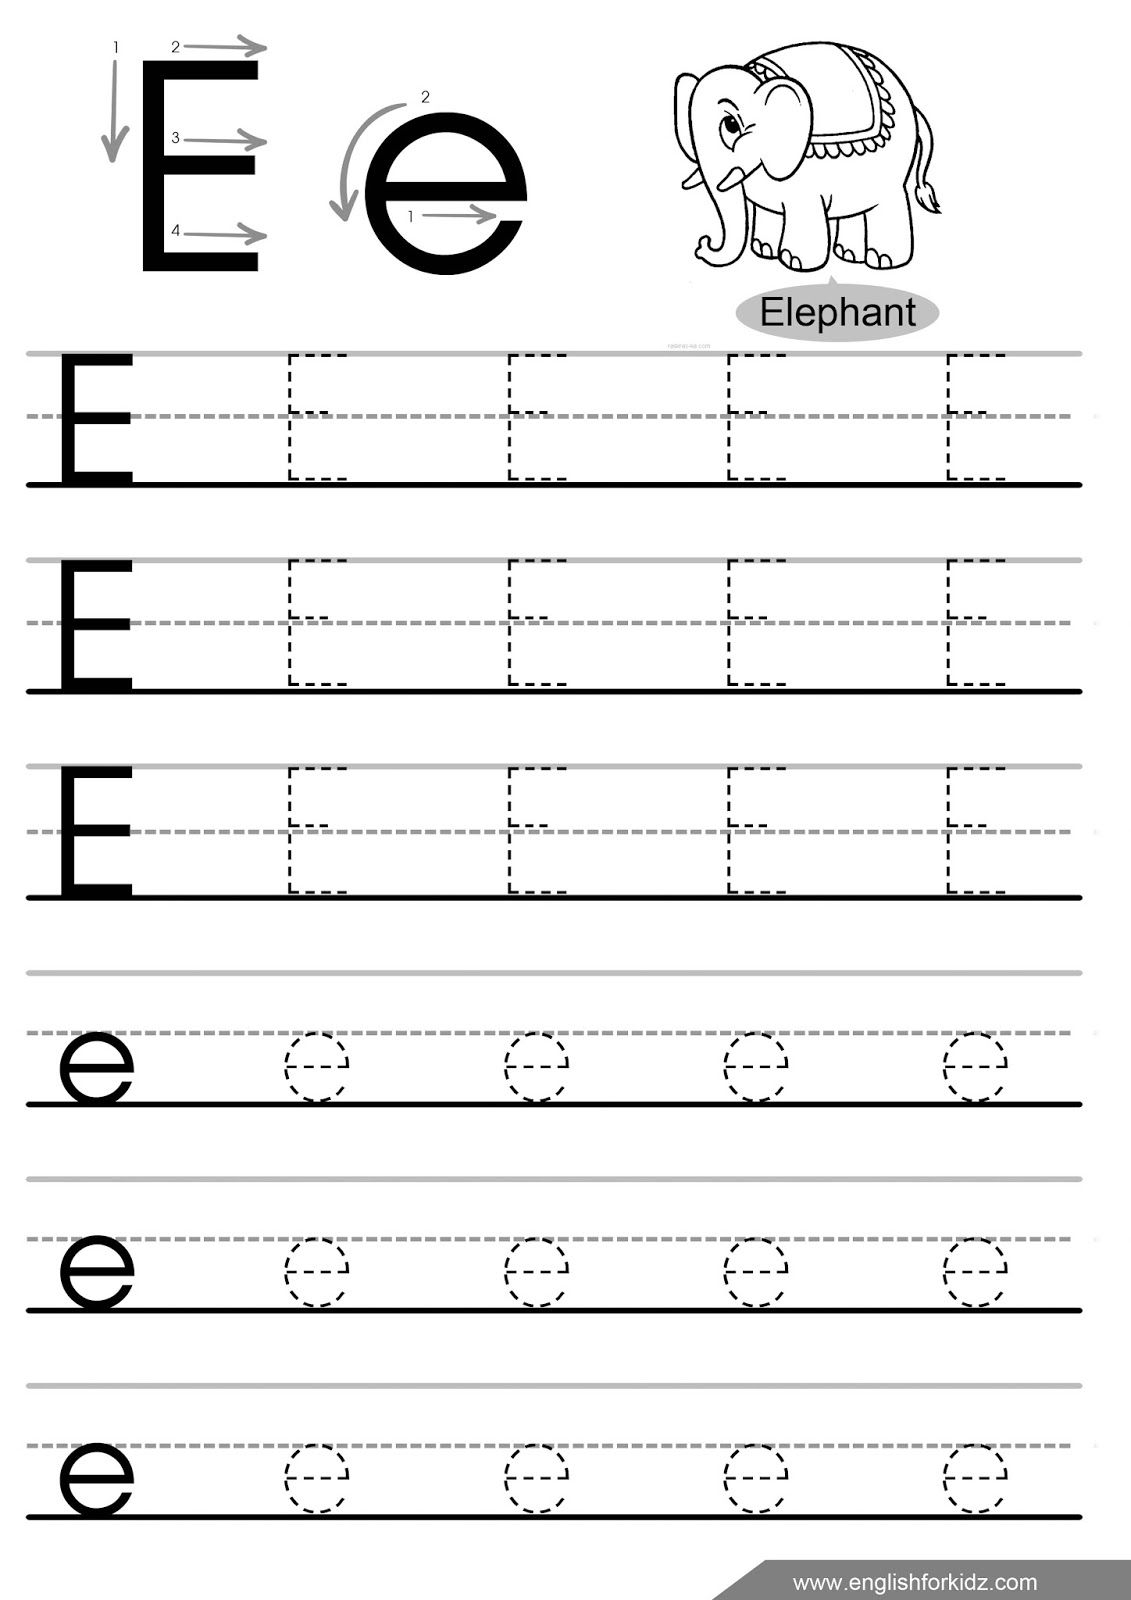 Letter Tracing Worksheets Letters A J | Tracing Worksheets intended for Alphabet Tracing Letter E